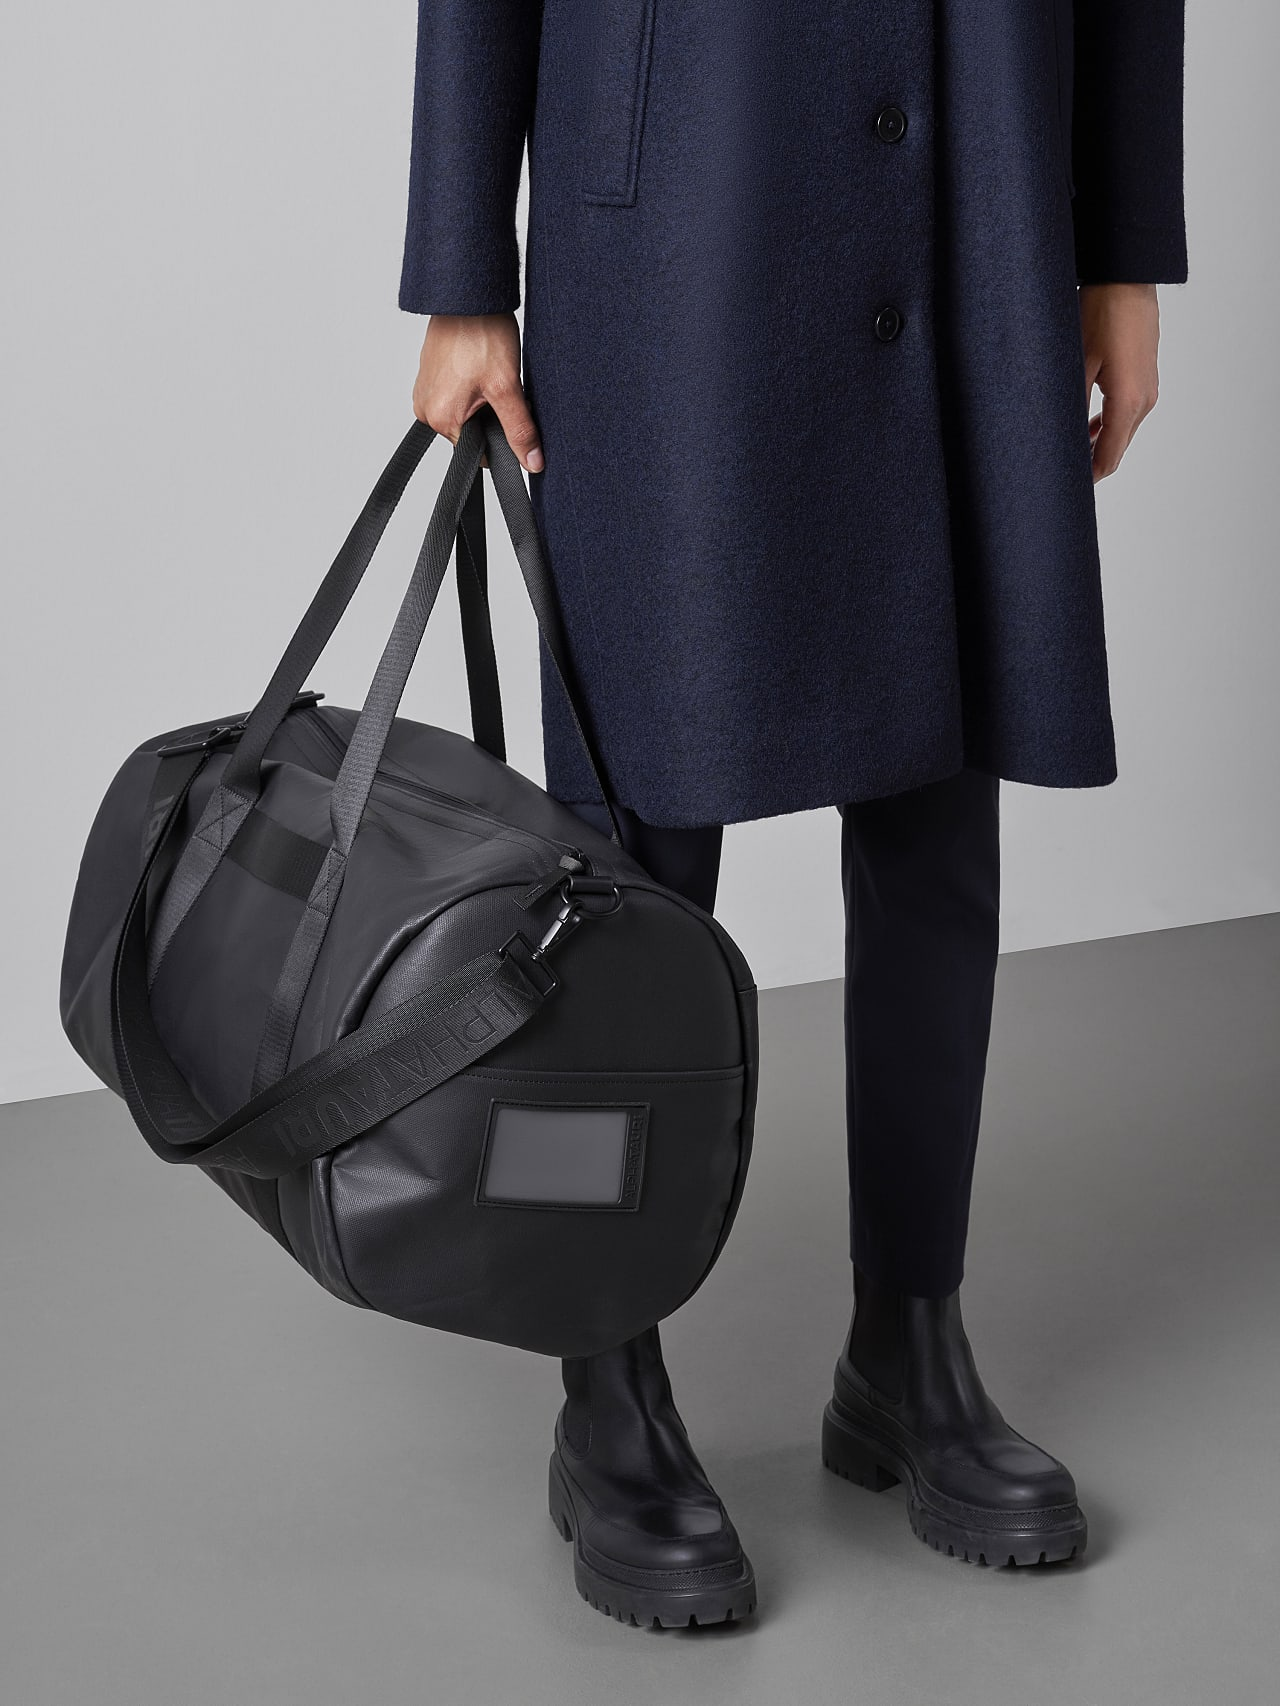 AWEE V4.Y5.02 Water-Repellent Duffle Bag dark grey / anthracite Extra Alpha Tauri